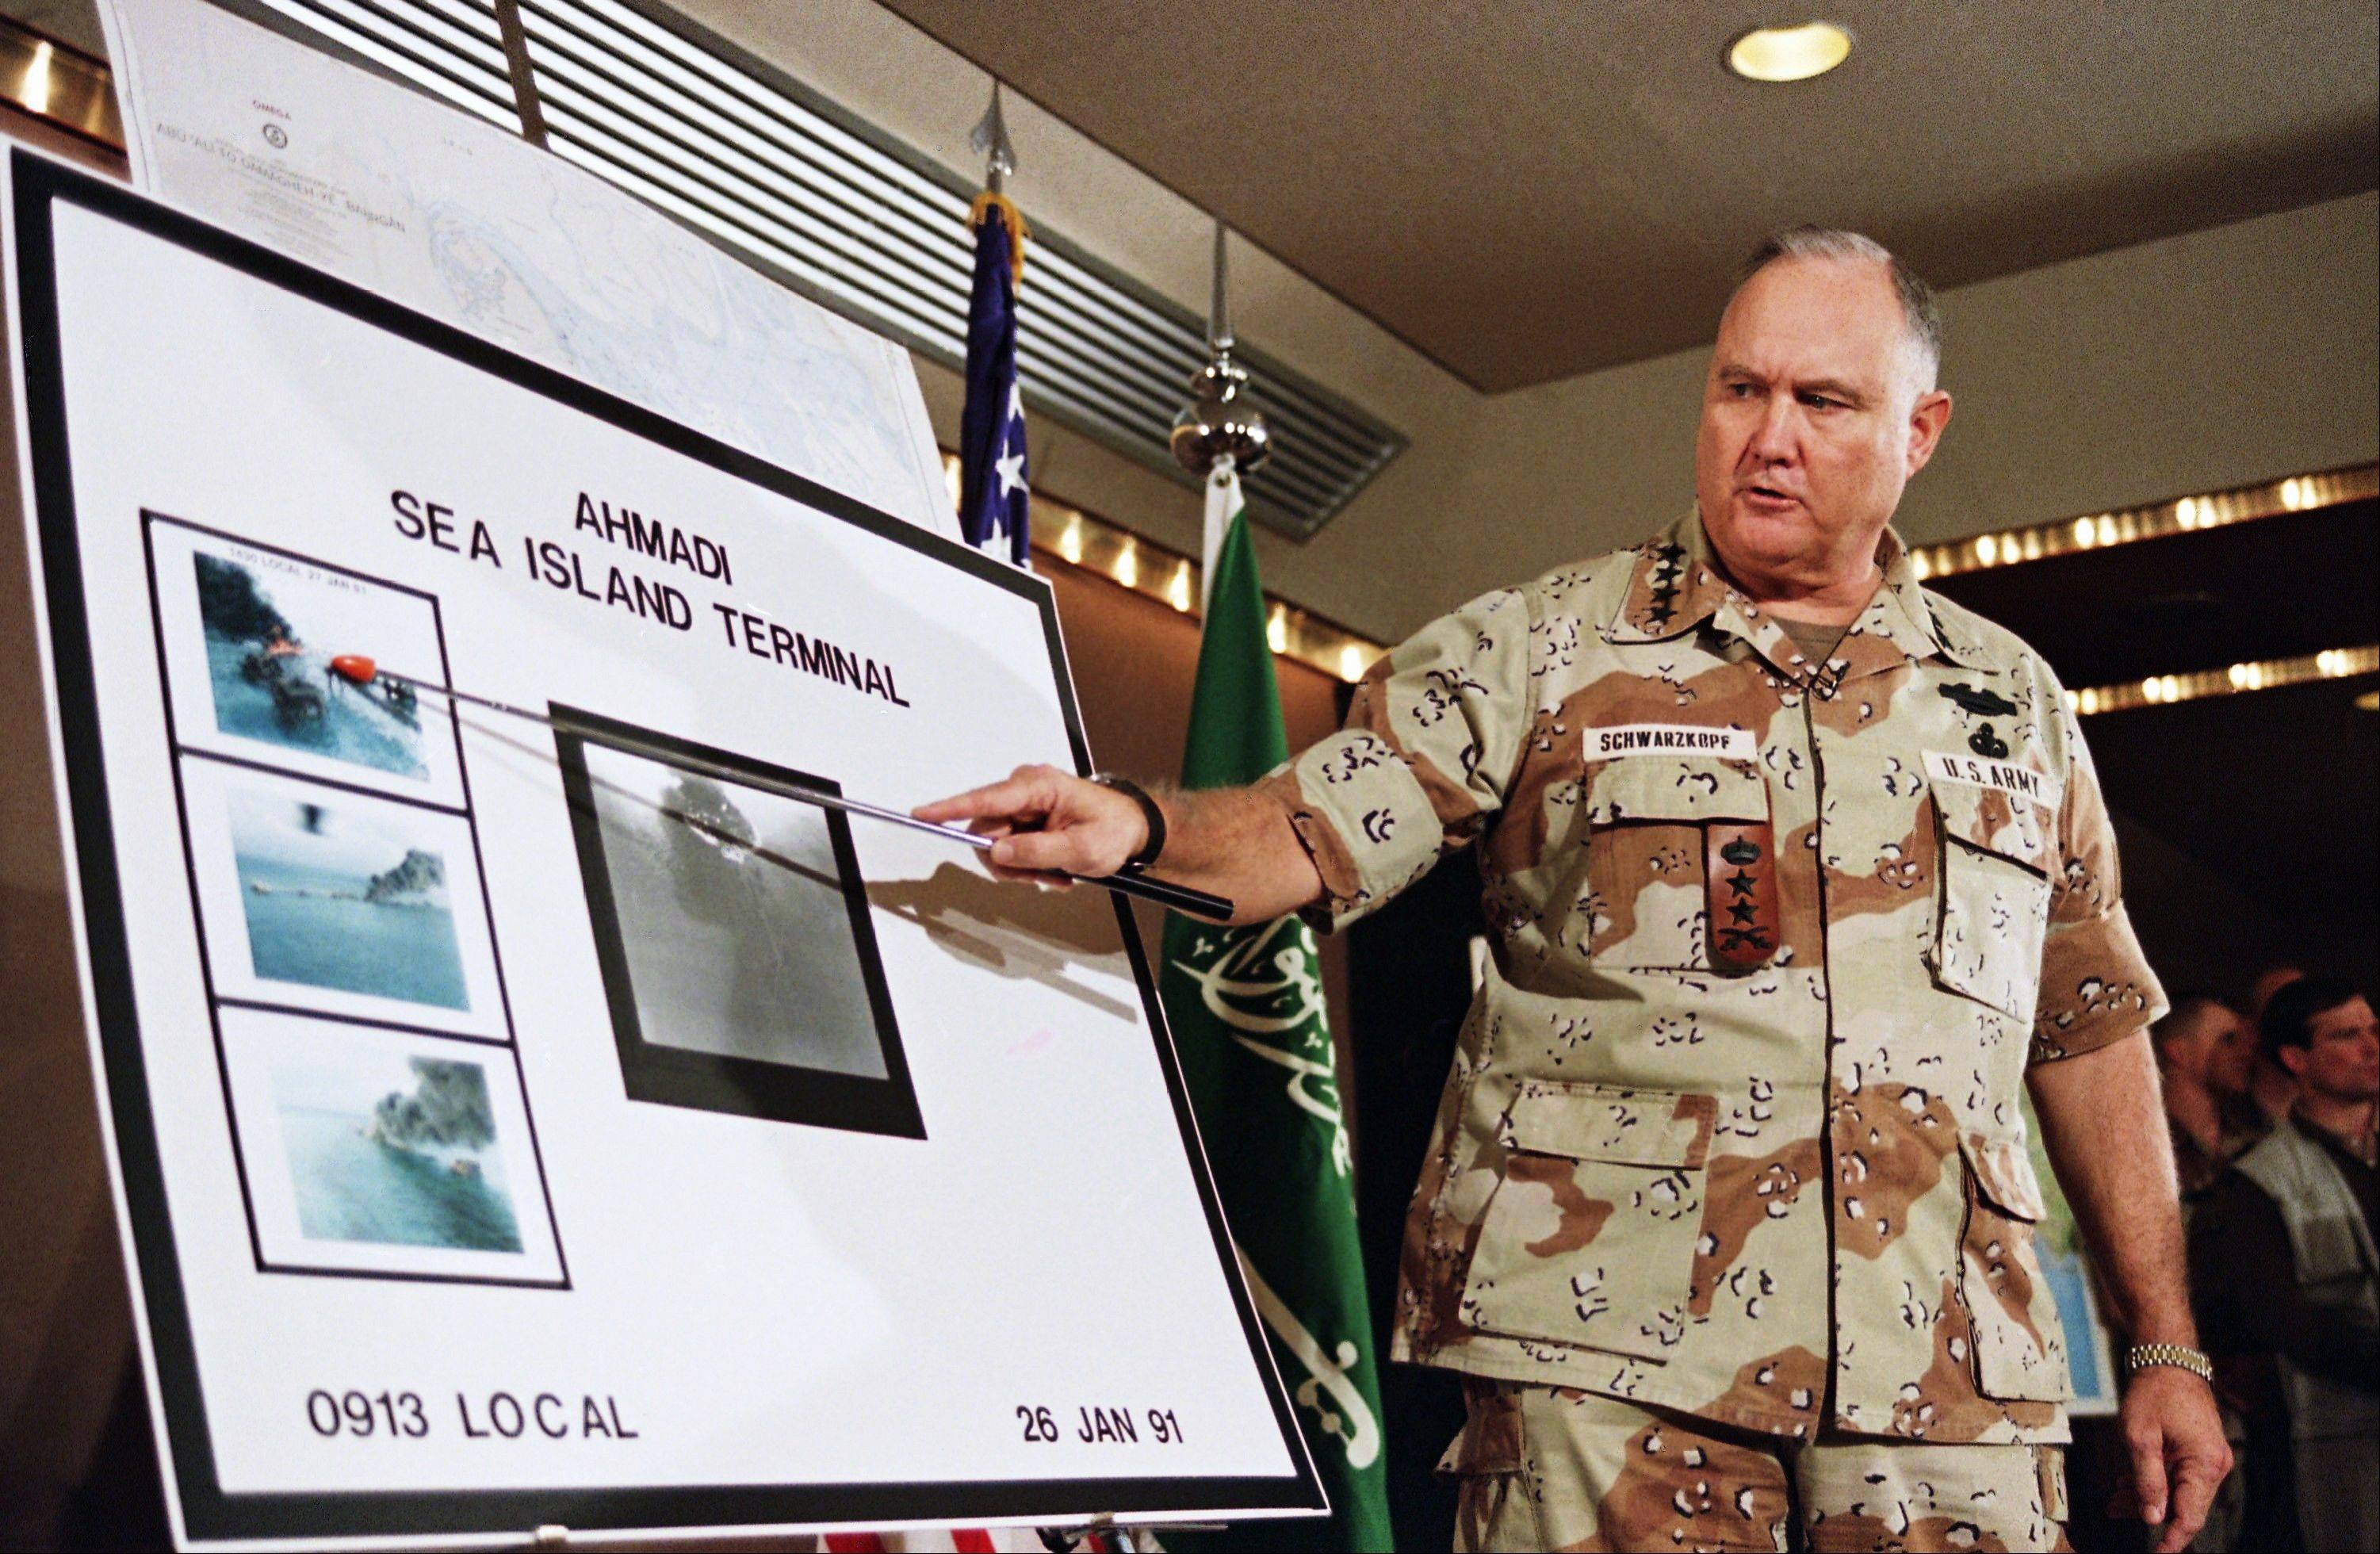 U.S. Army Gen. Norman Schwarzkopf points to row of photos of Kuwait�s Ahmadi Sea Island Terminal on fire after a U.S. attack on the facility.